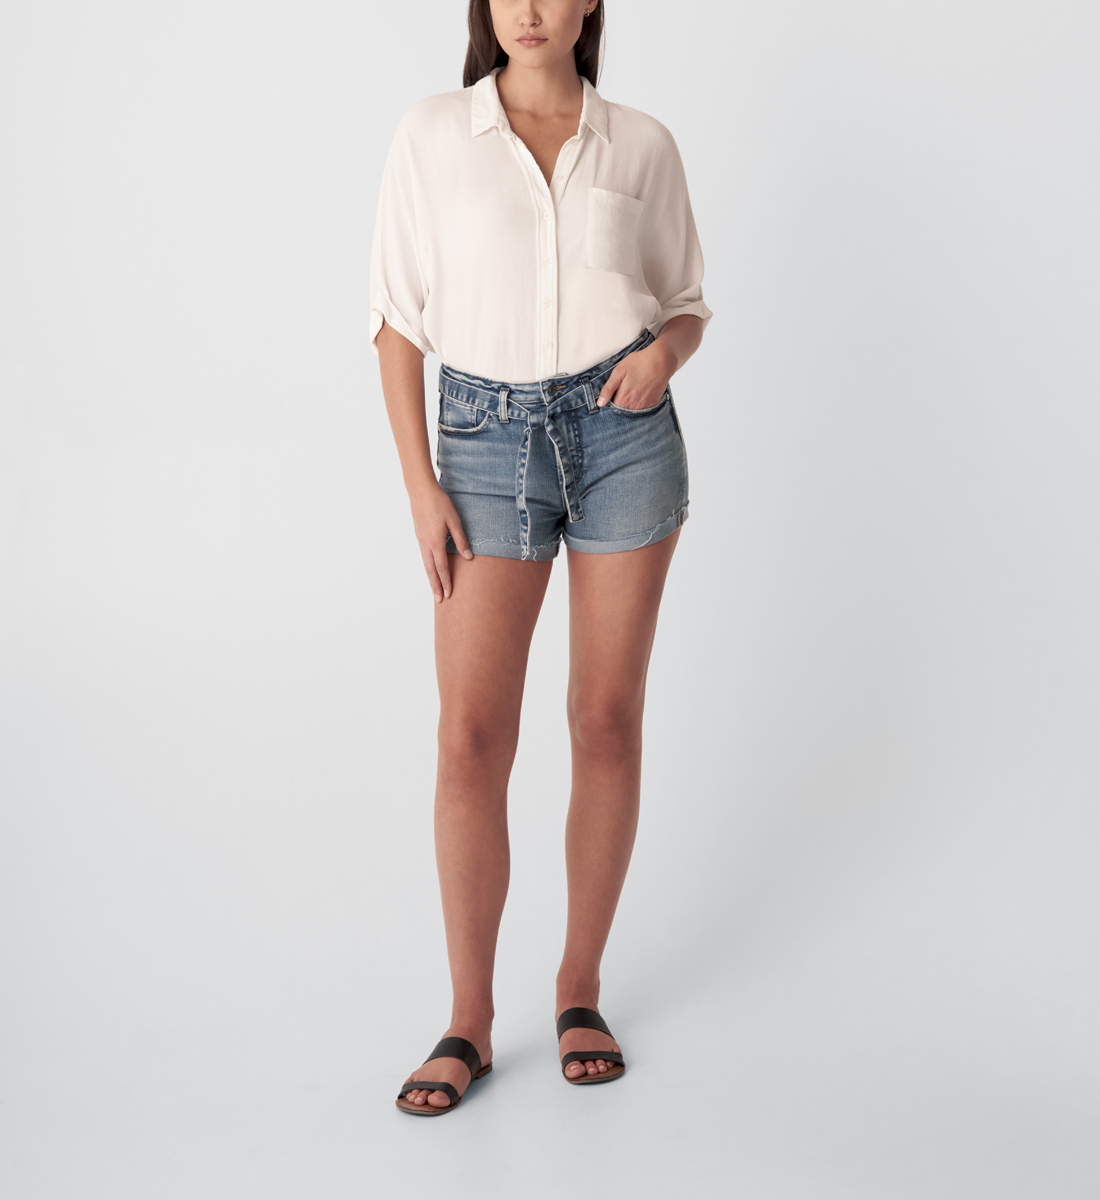 Silver Jeans Sure Thing High Rise Short